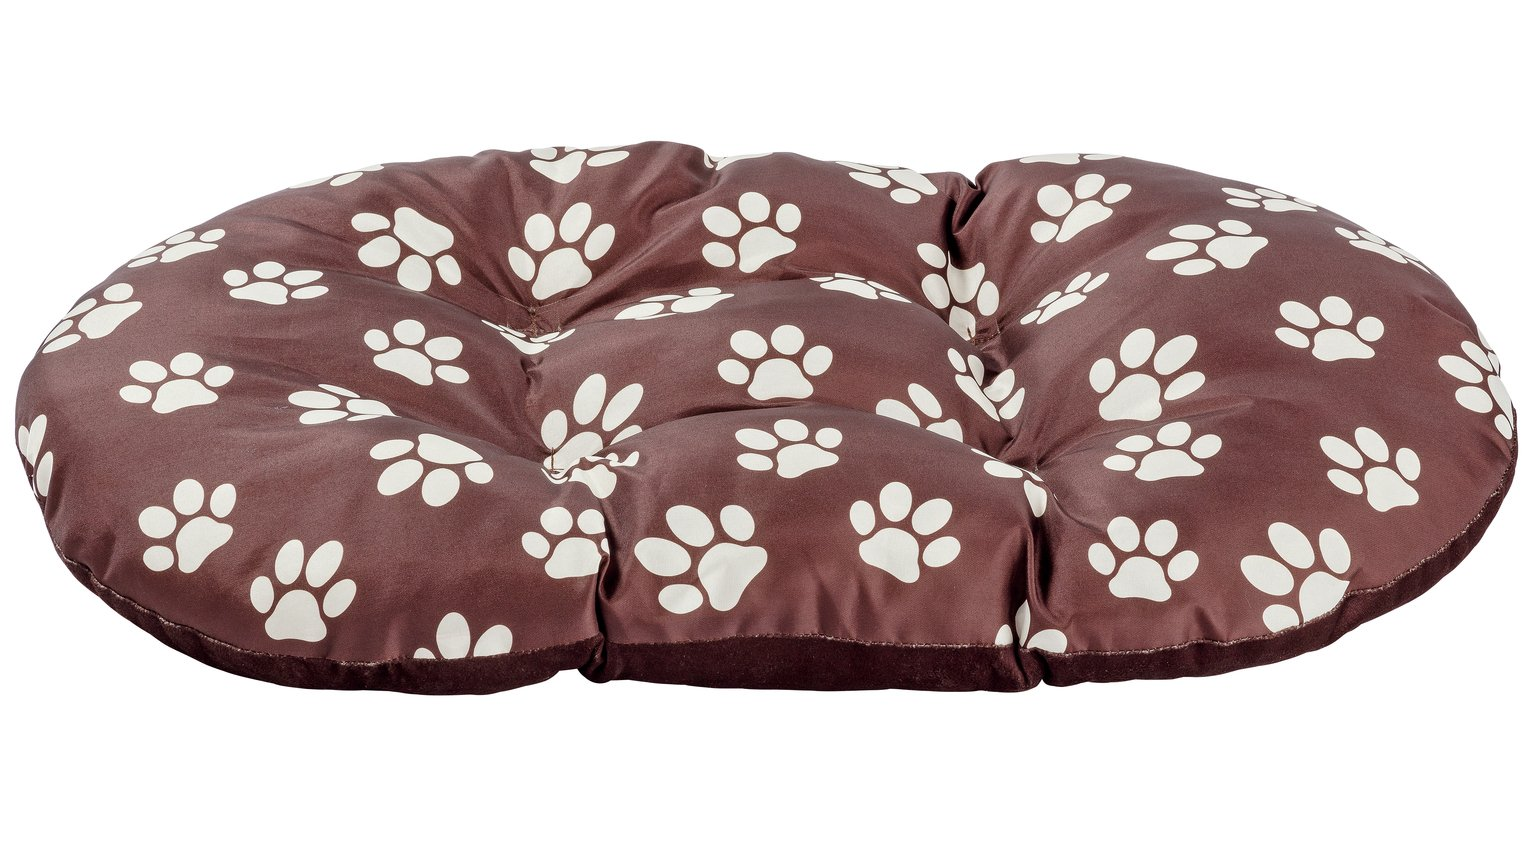 Paw Print Fleece Oval Cushion - Medium